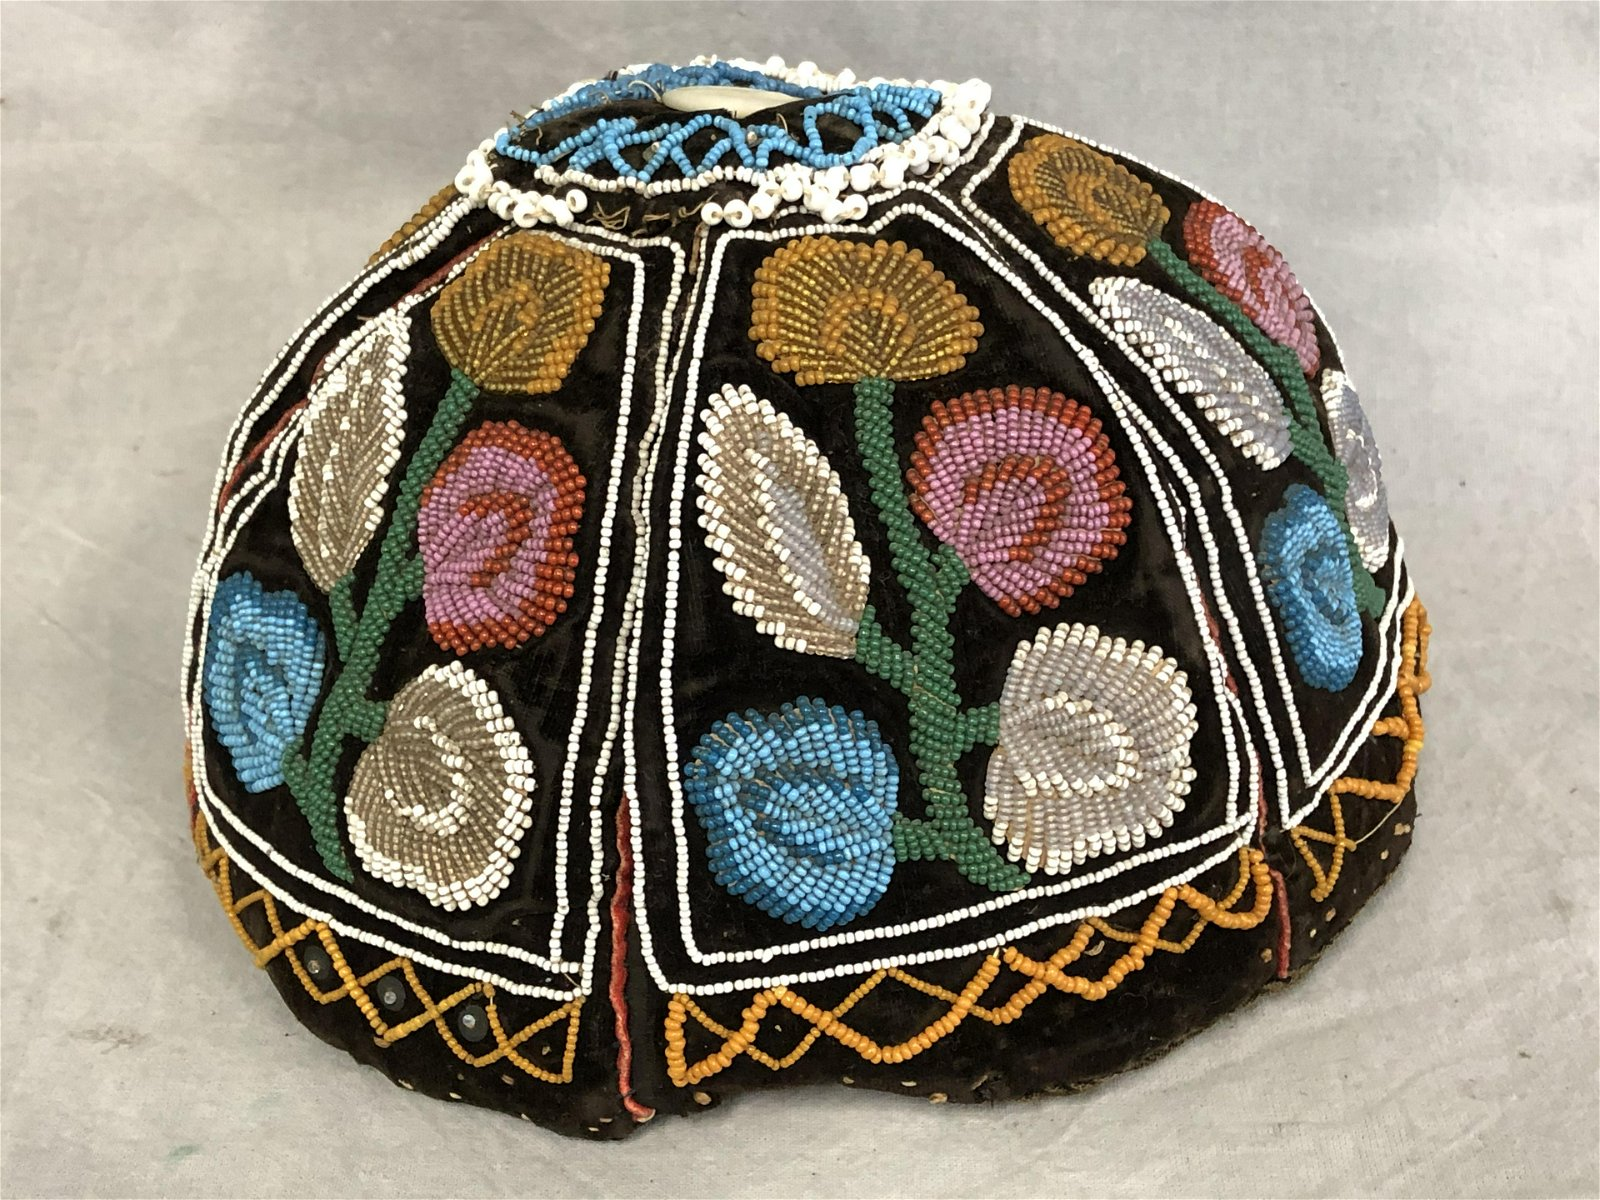 19thC. Iroquois Tribe Dome Hat